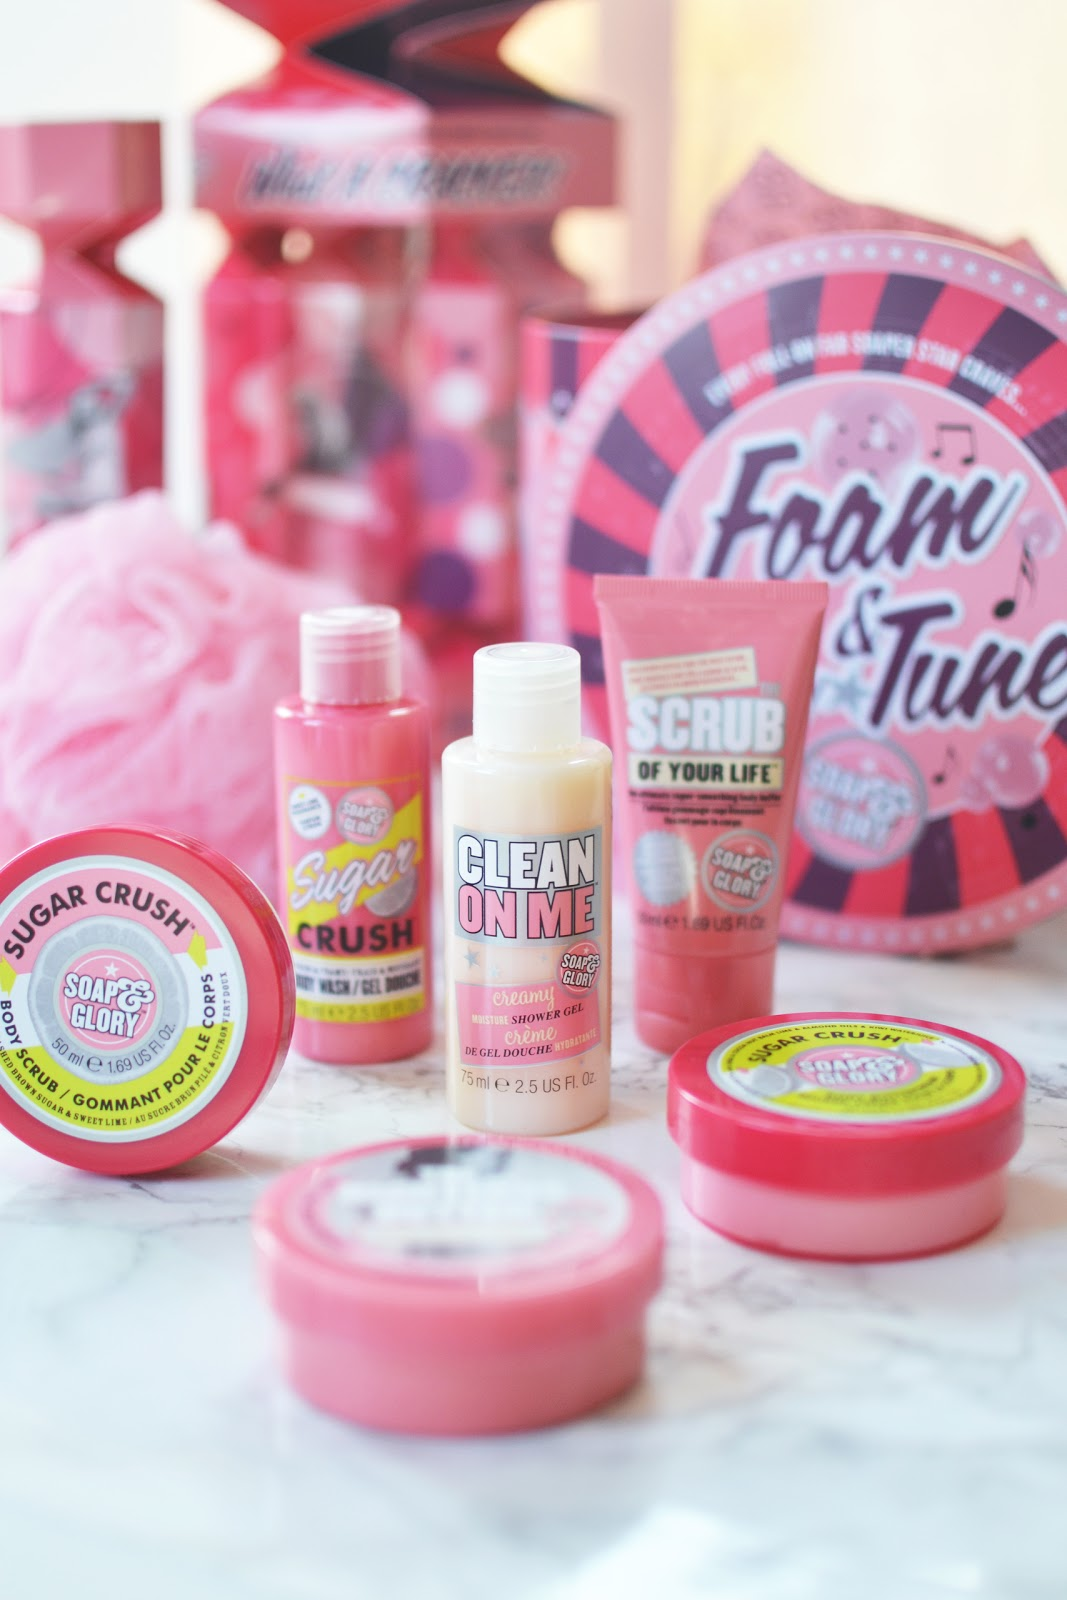 Soap & Glory Christmas Gift Sets 2016